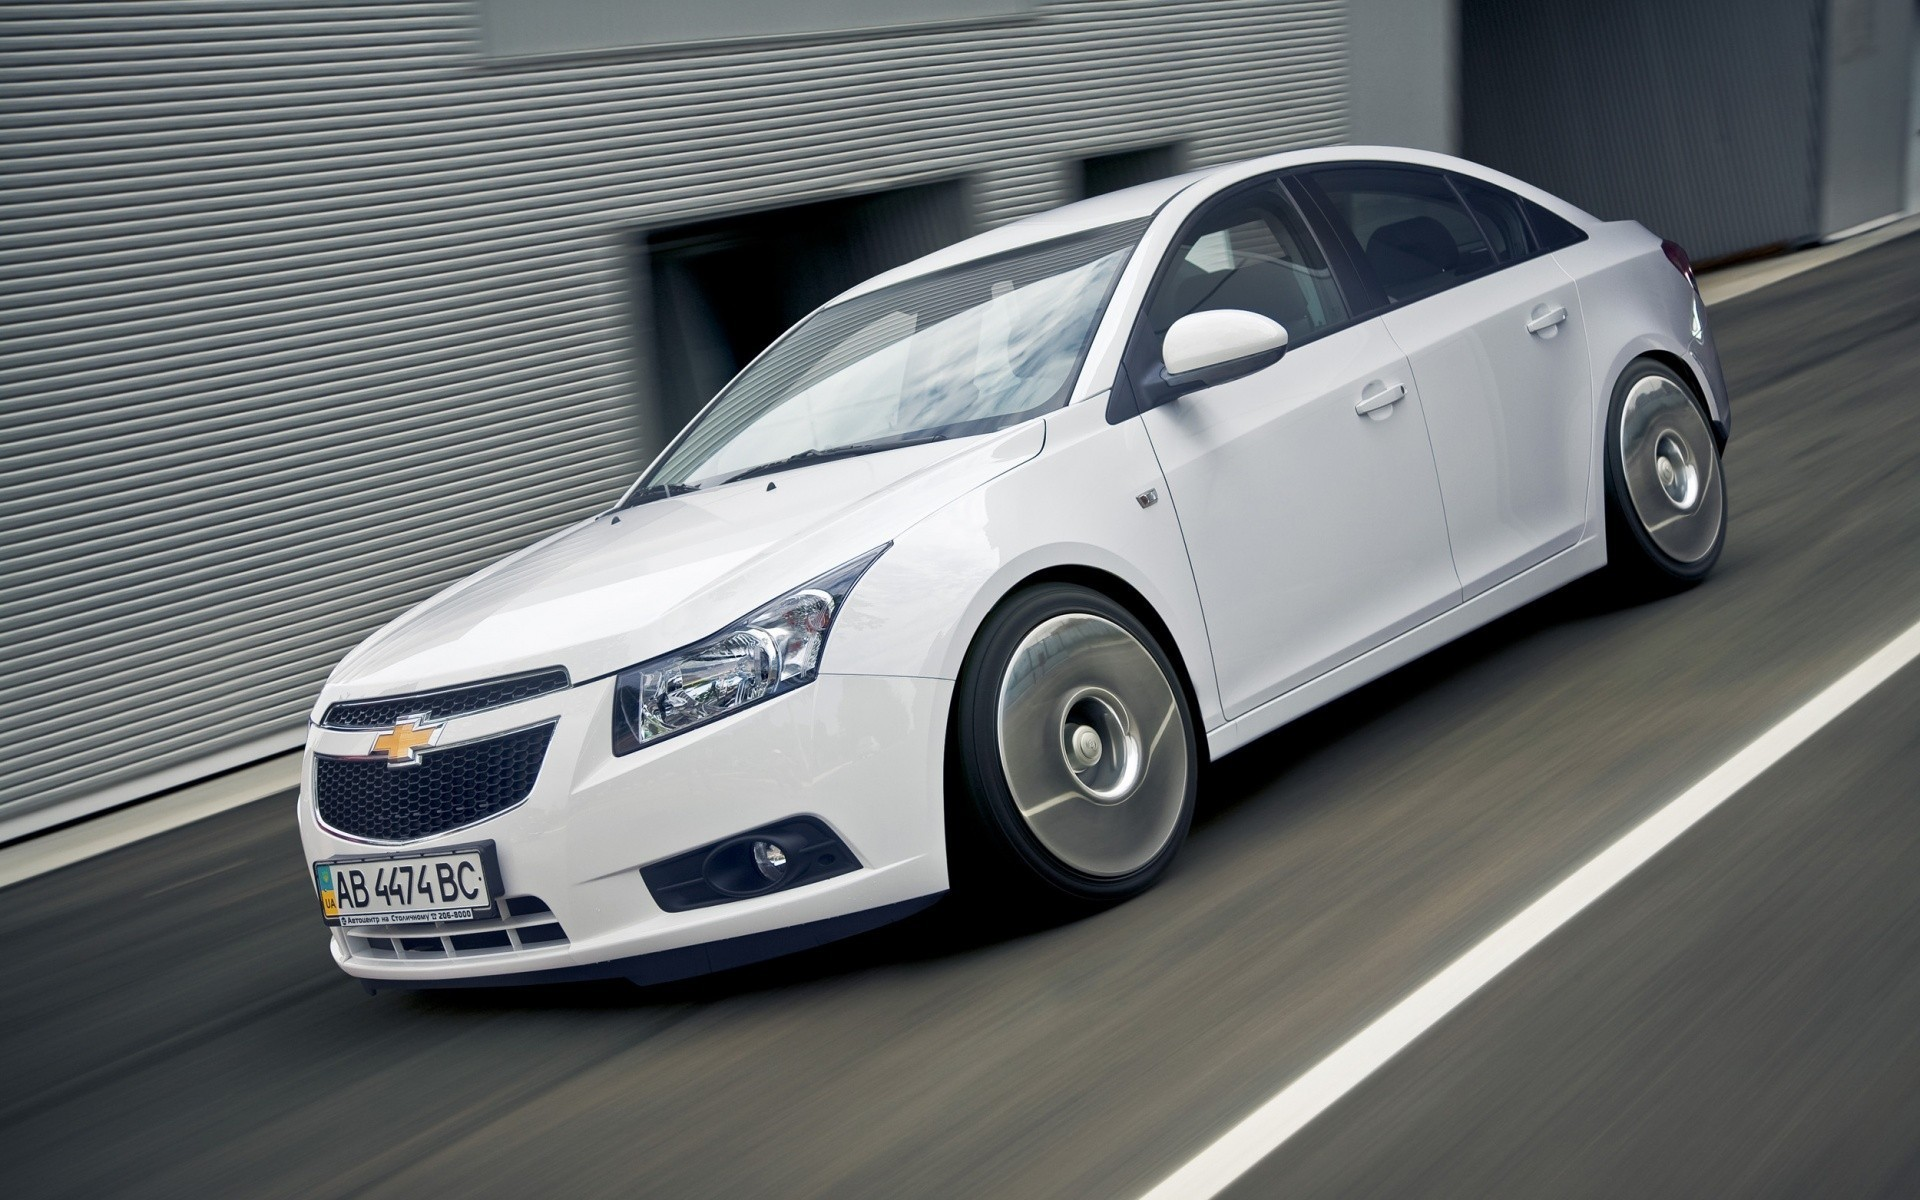 chevrolet cruze cars tuning wallpaper. Black Bedroom Furniture Sets. Home Design Ideas